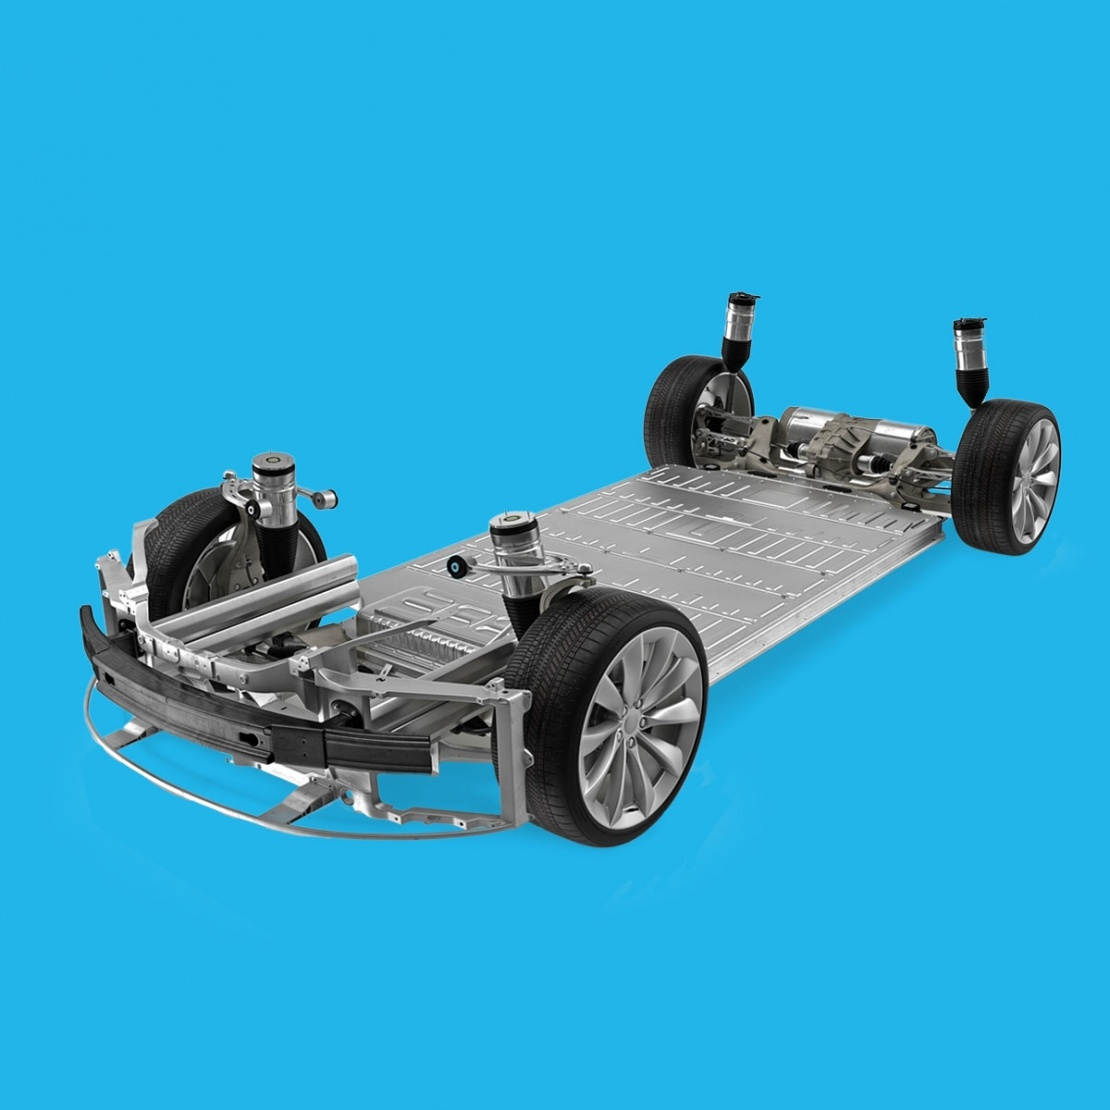 electric car battery base on blue background